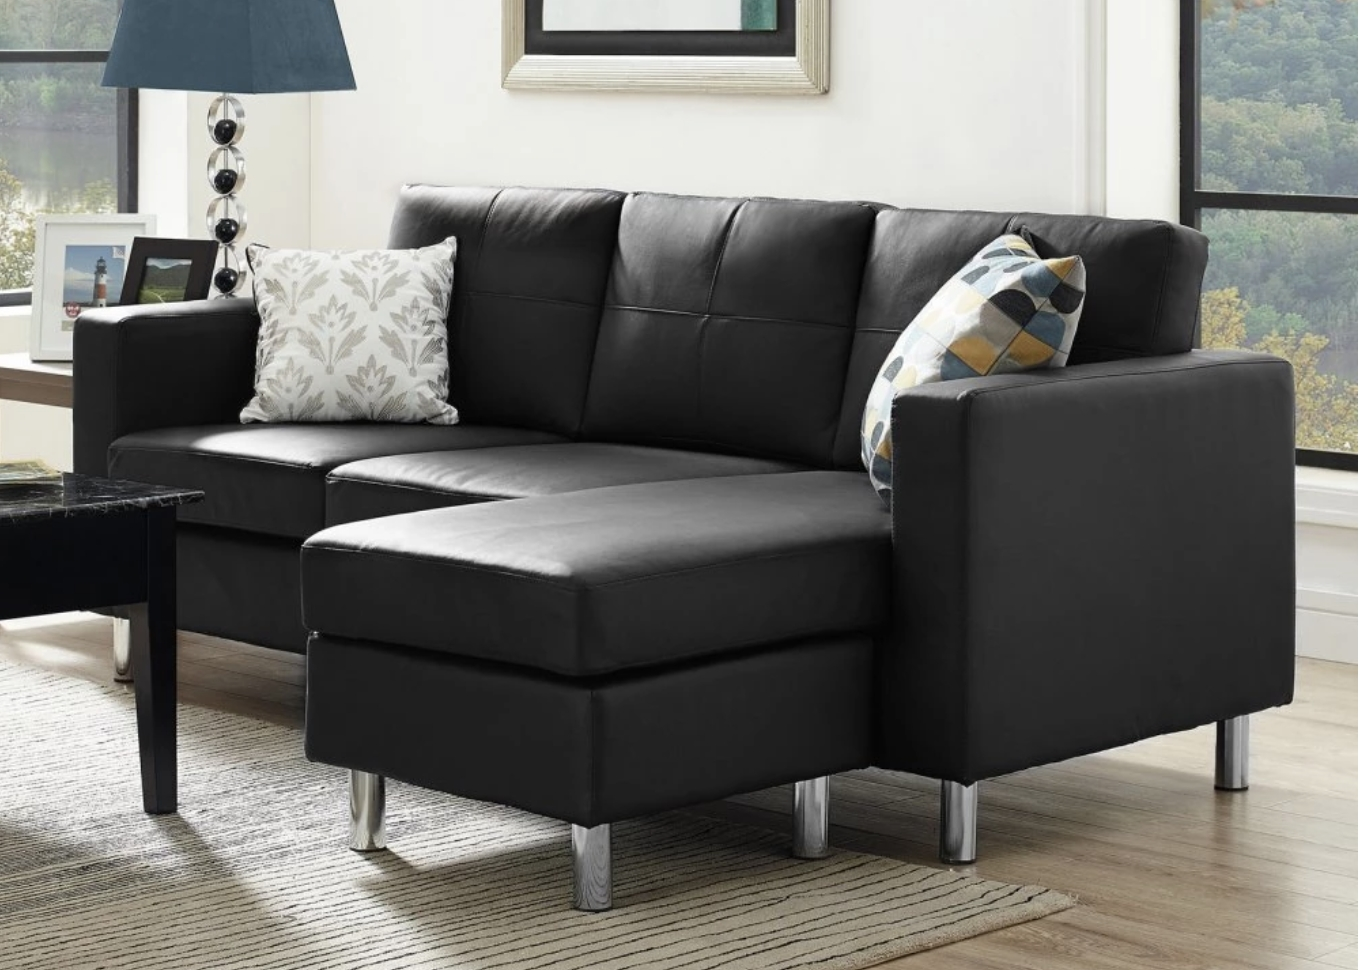 Best And Newest 75 Modern Sectional Sofas For Small Spaces (2018) Inside Sectional Sofas For Small Places (View 1 of 15)